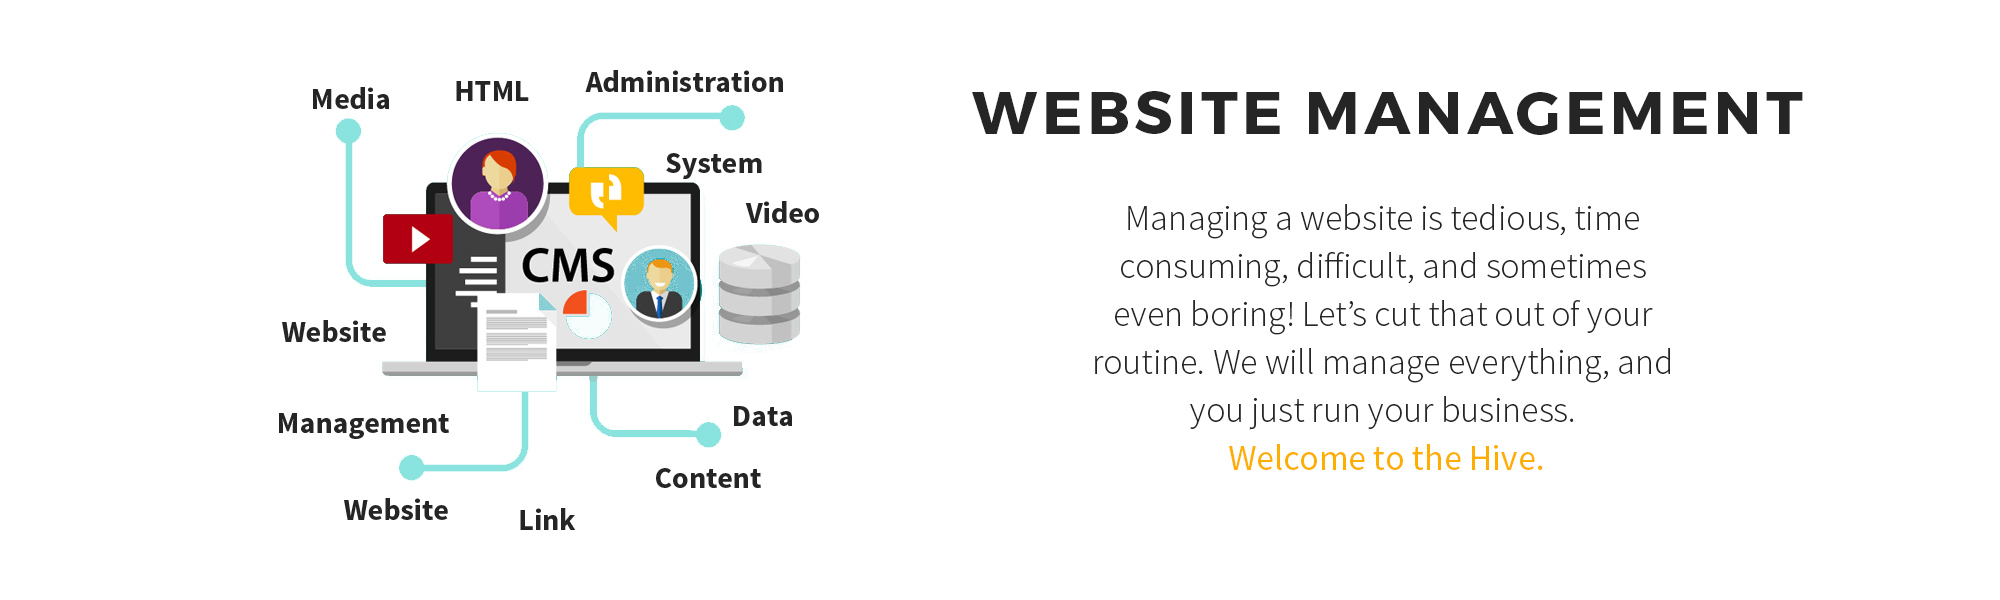 Hoststing.com Website Management